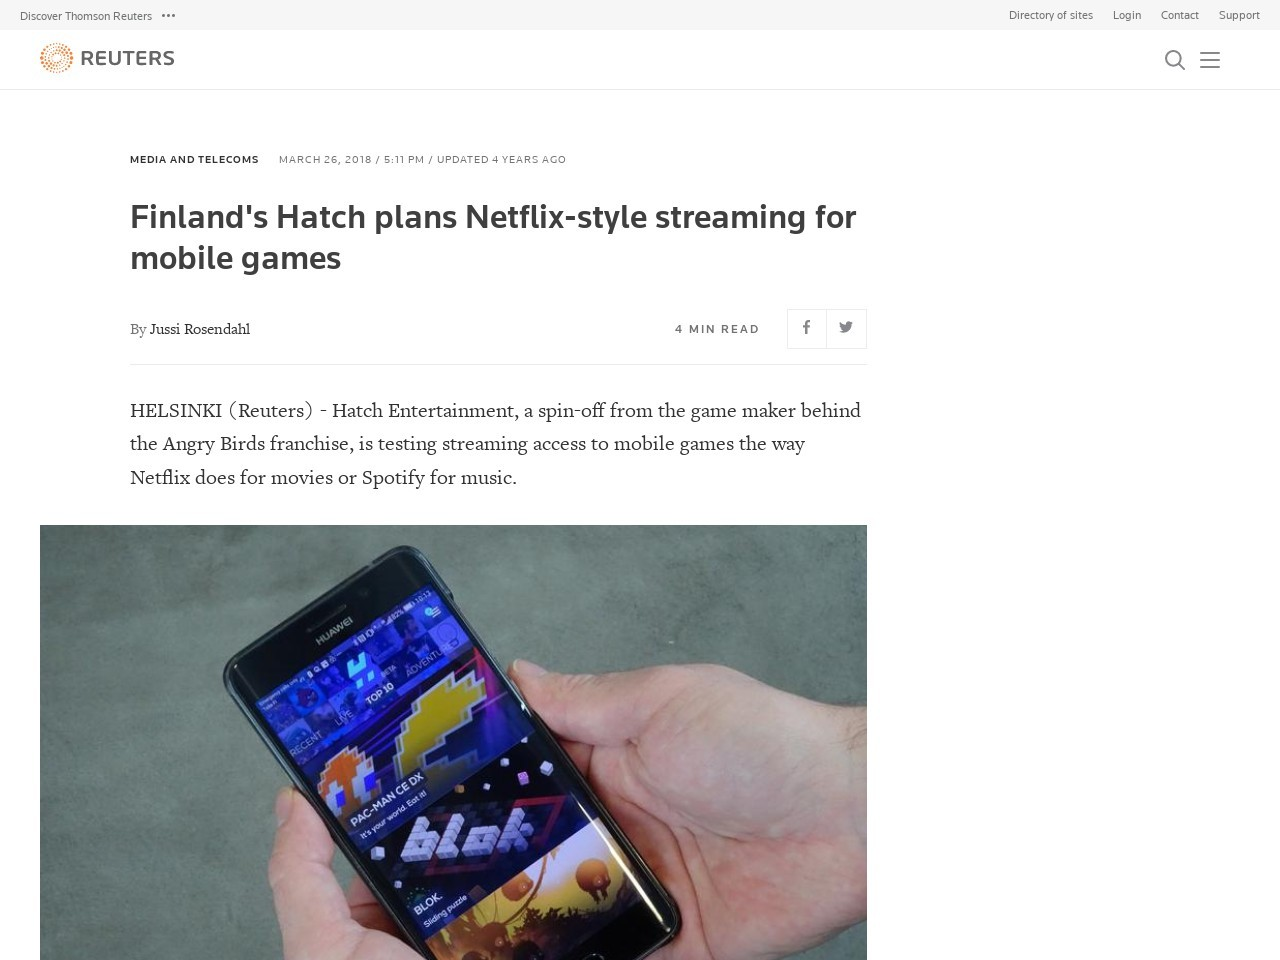 Finland's Hatch plans Netflix-style streaming for mobile games